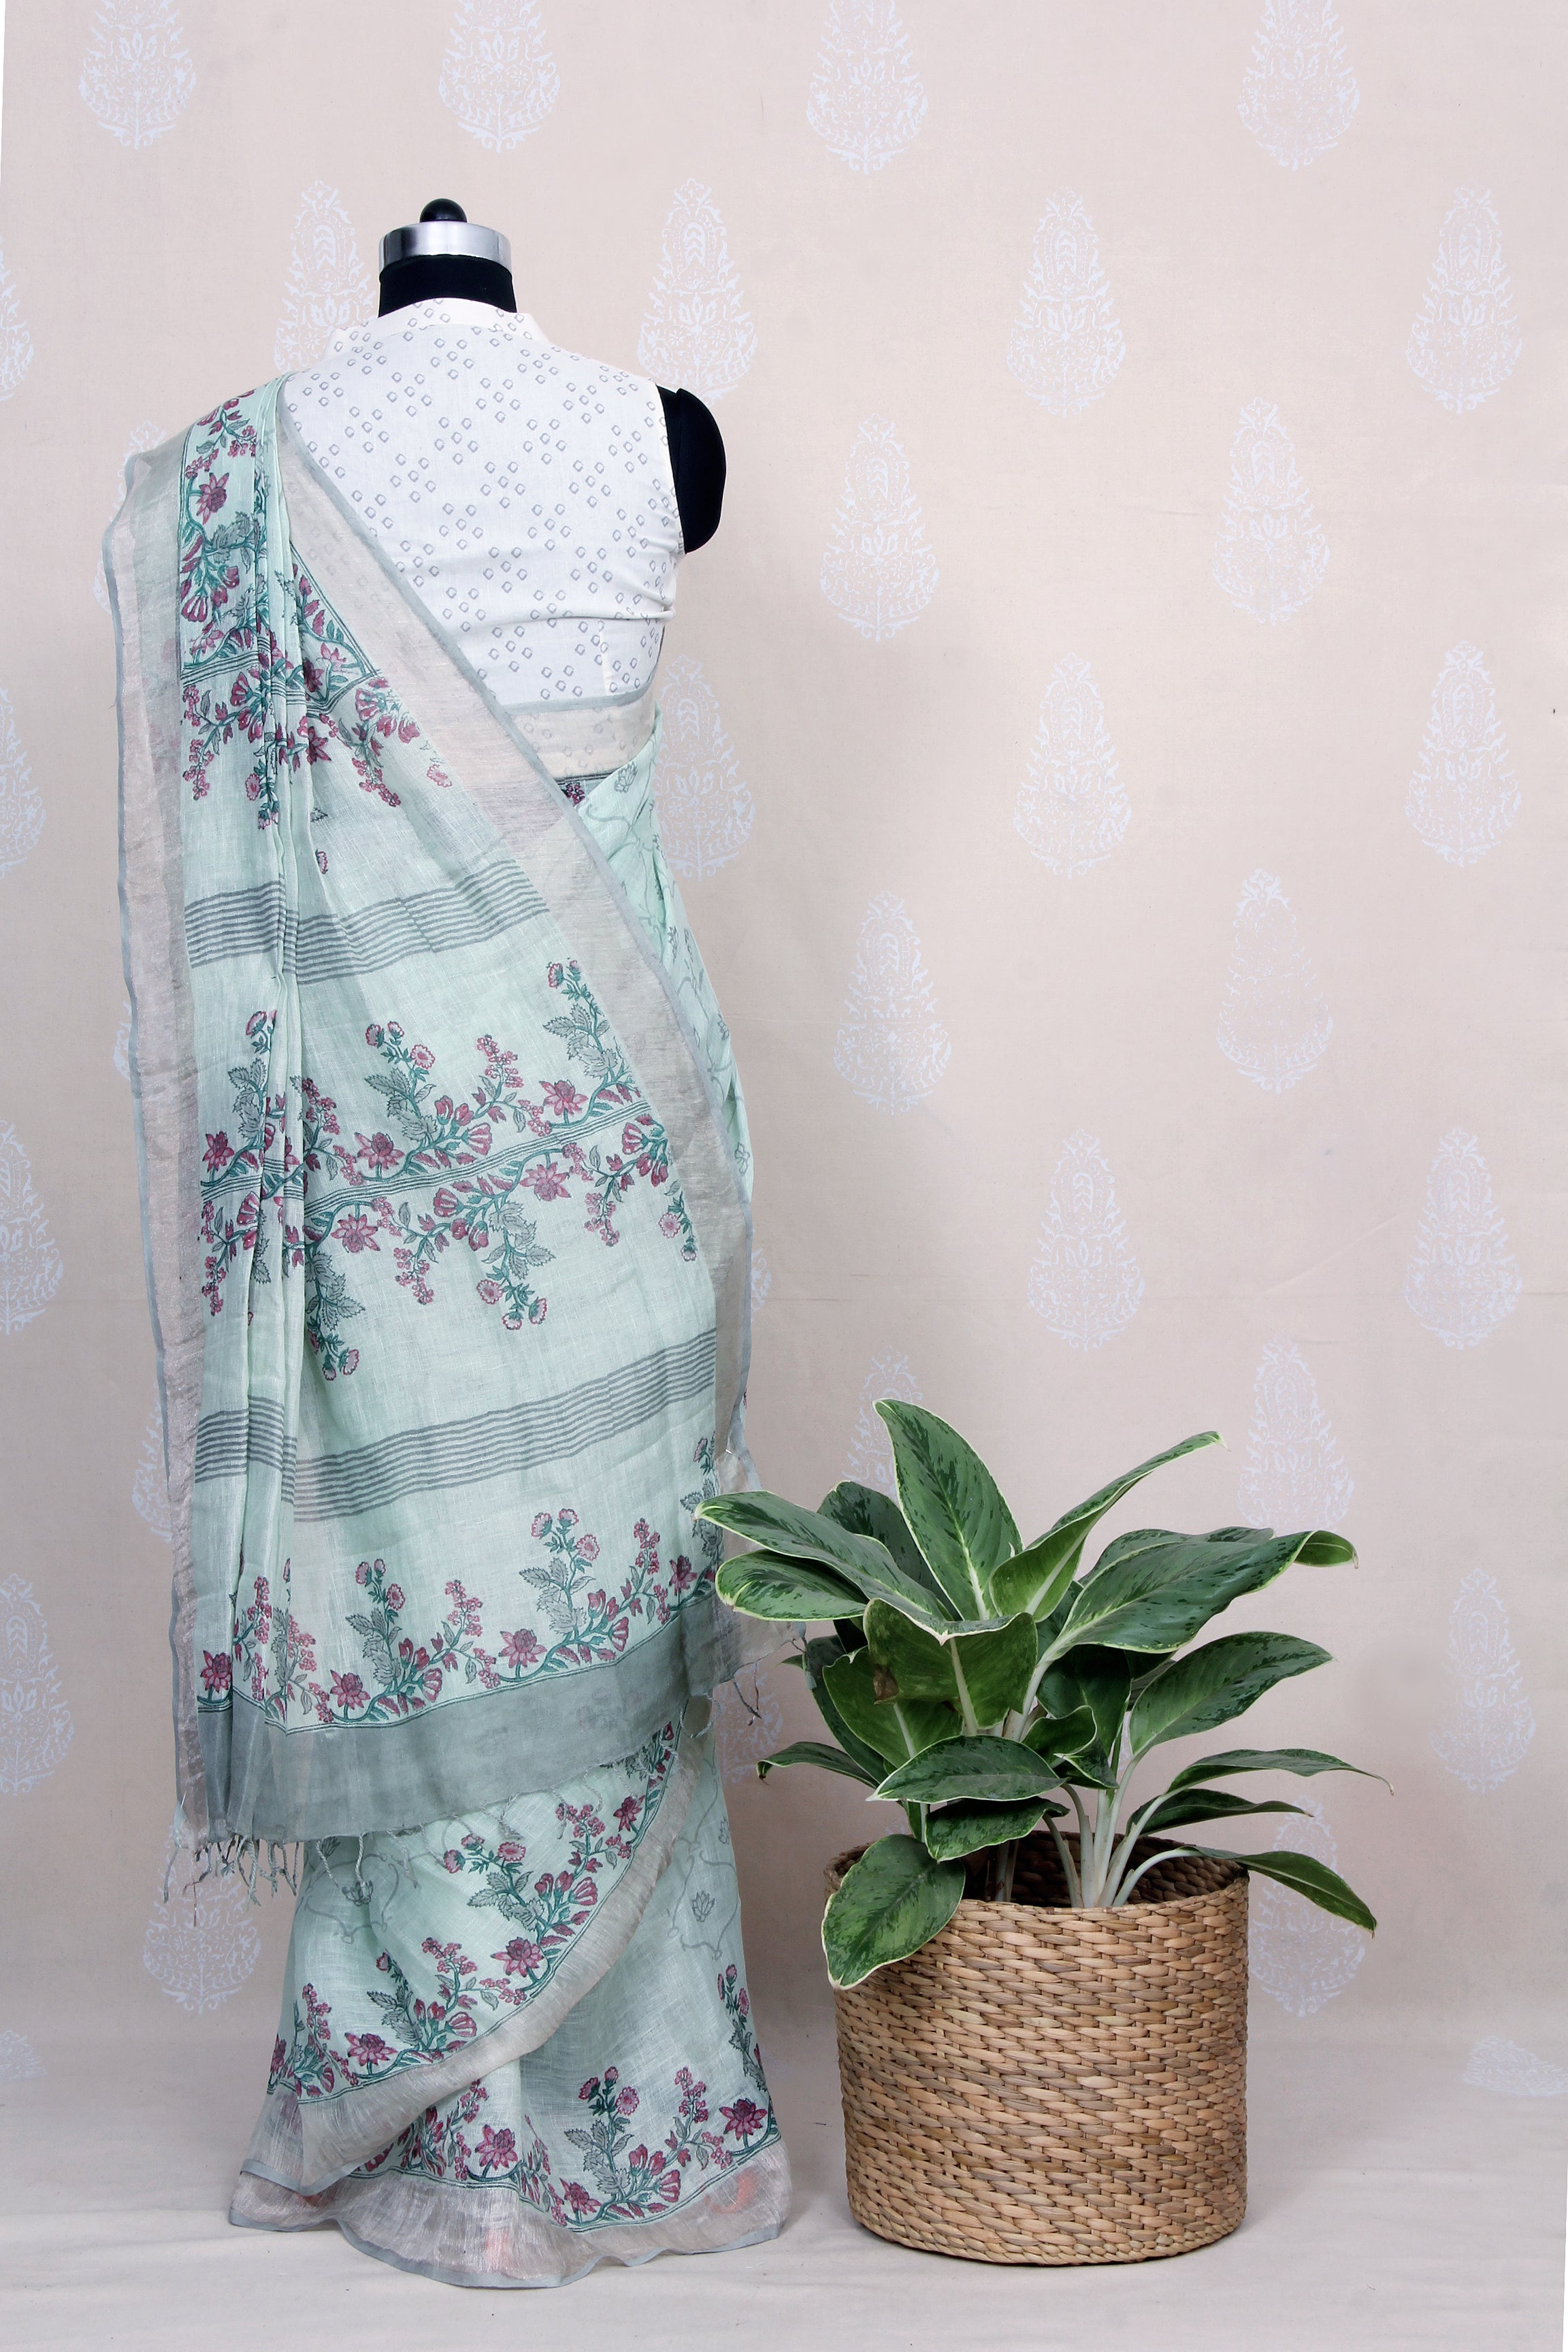 TEAL GREEN HANDWOVEN LINEN SAREE WITH HAND BLOCK PRINT IN GREY AND PURPLE - Tina Eapen Design Studio